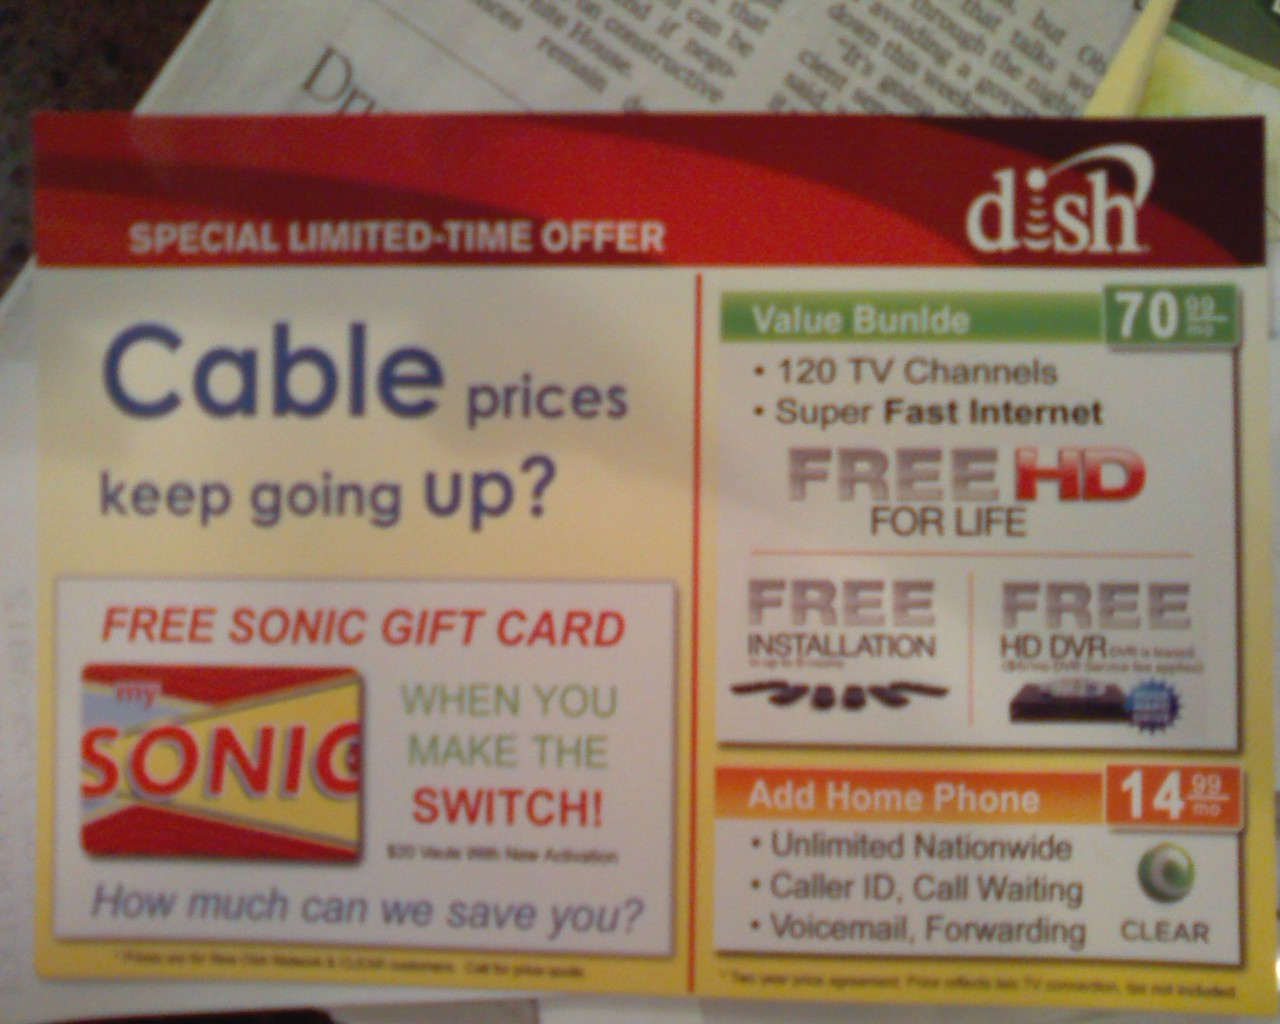 Dish network coupons coupon codes and promotions